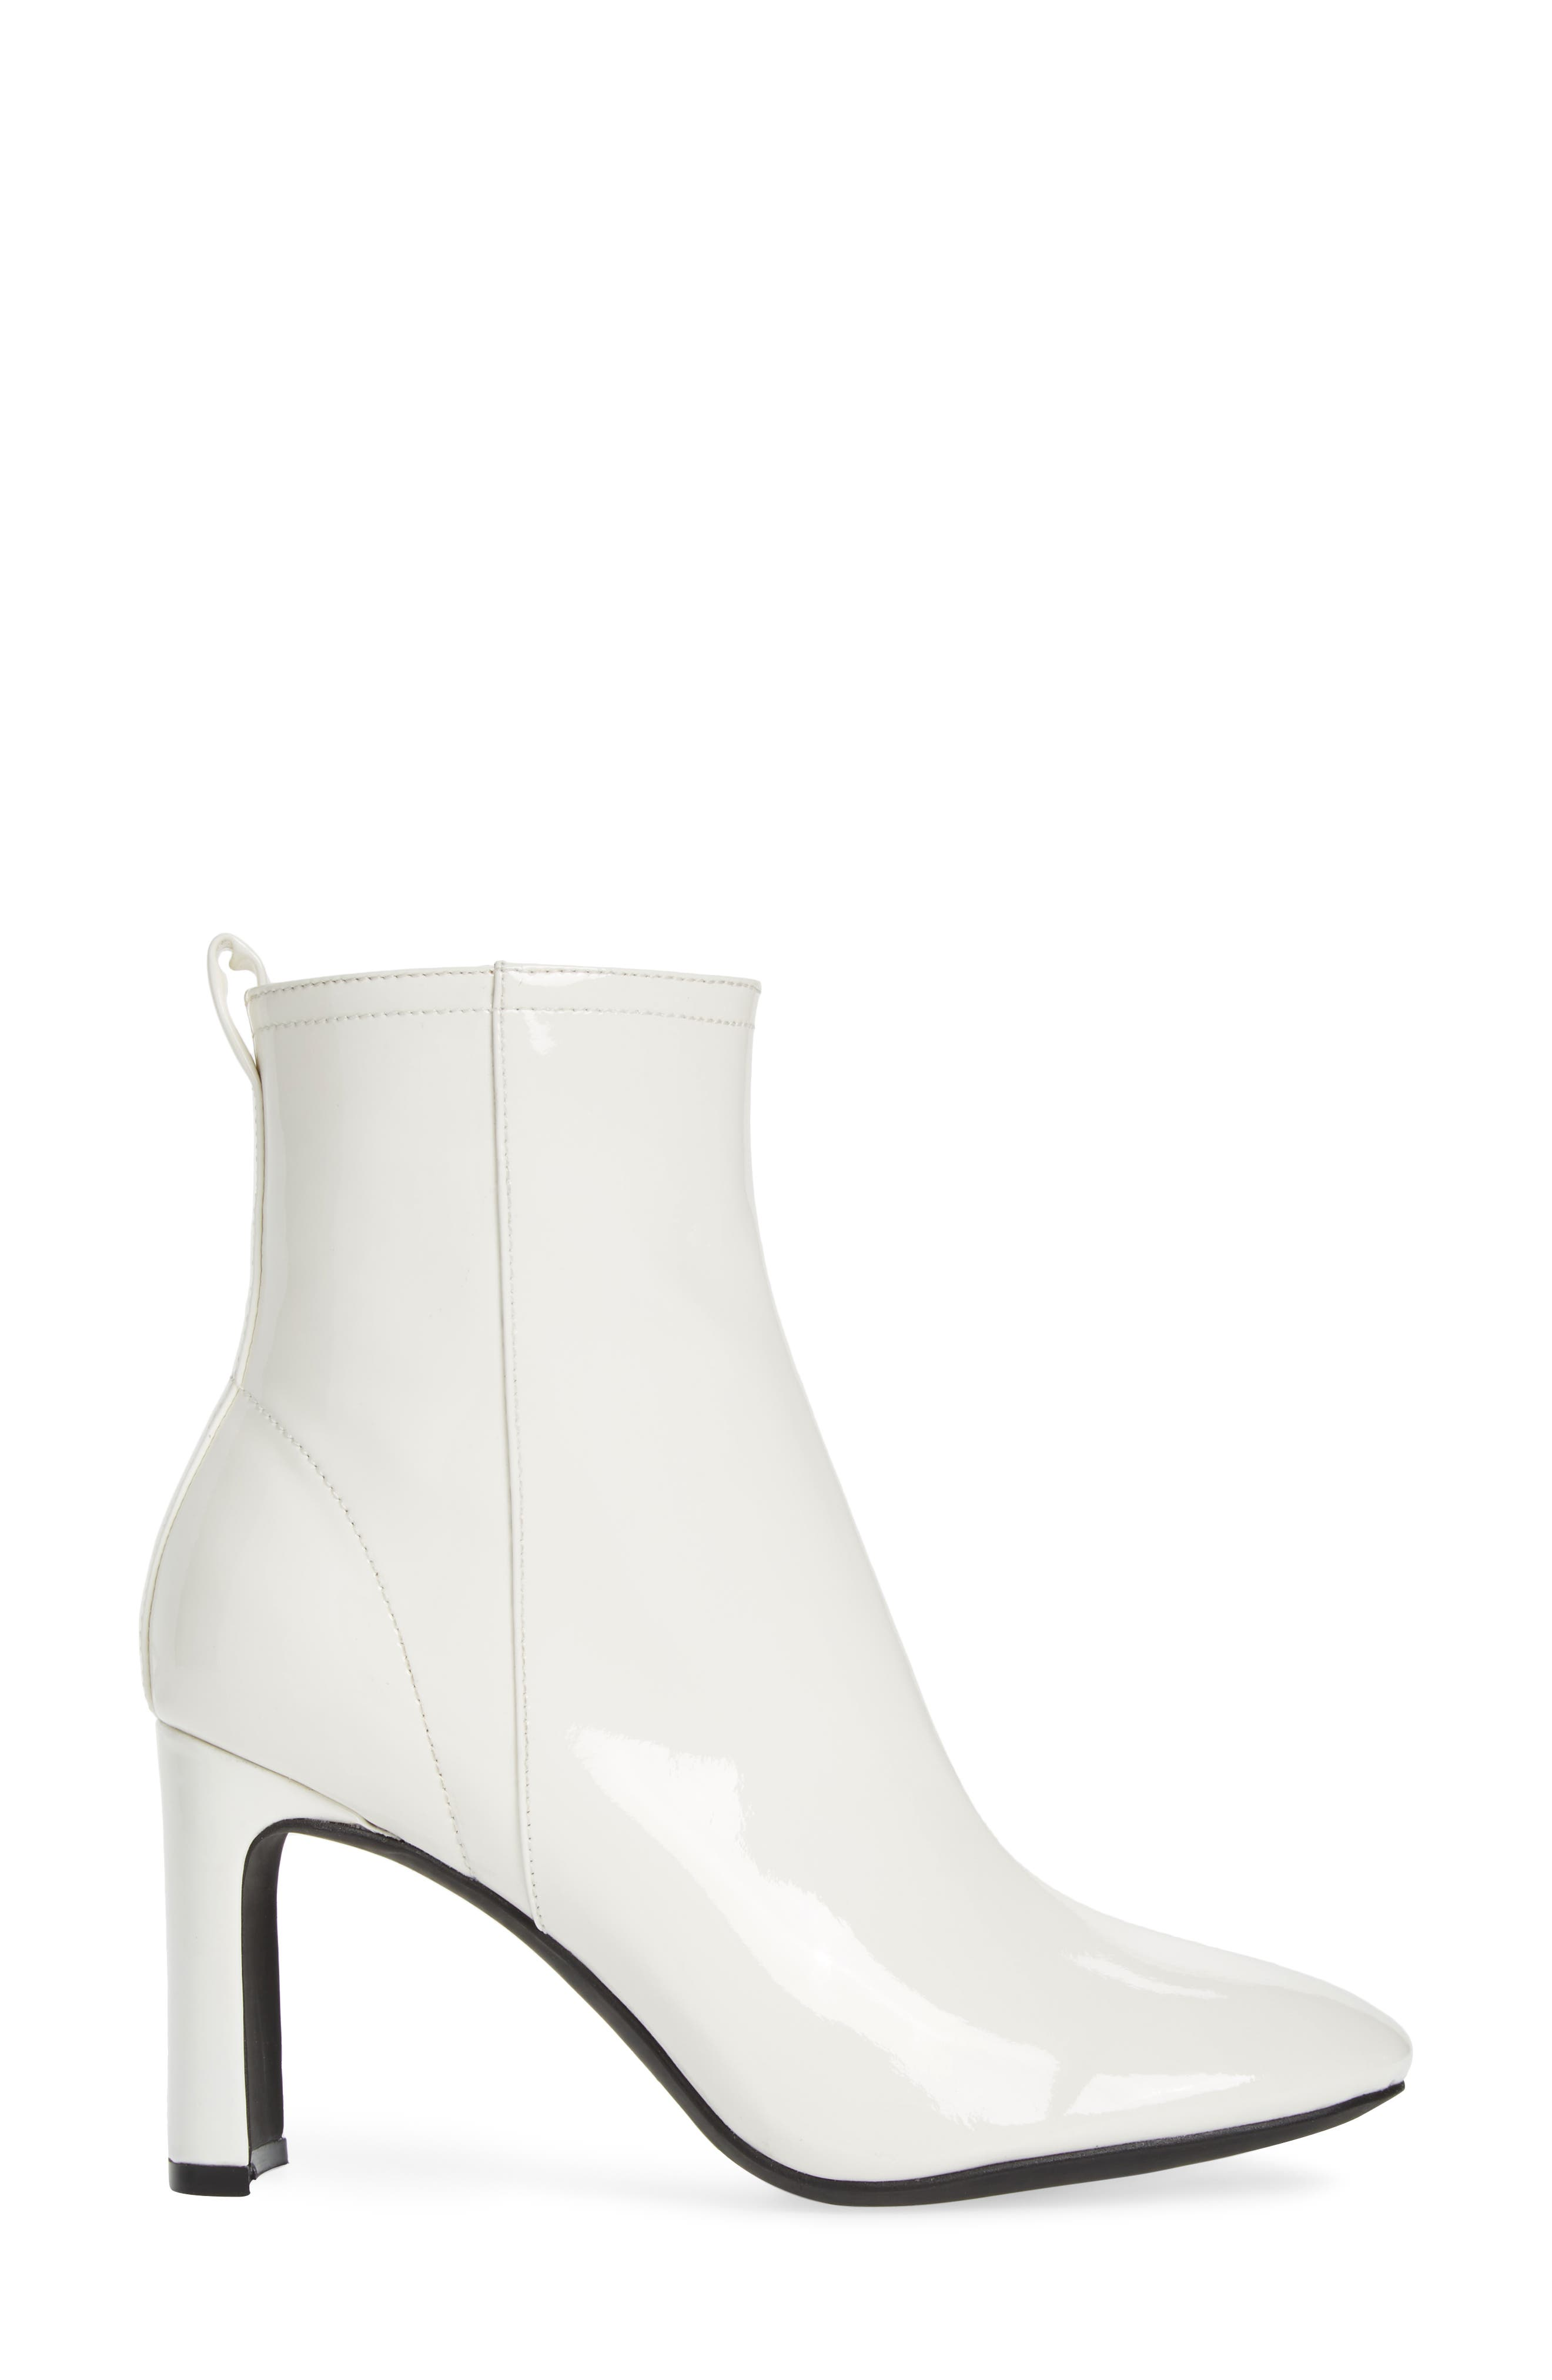 Chapel Curved Heel Bootie,                             Alternate thumbnail 3, color,                             White Patent Leather